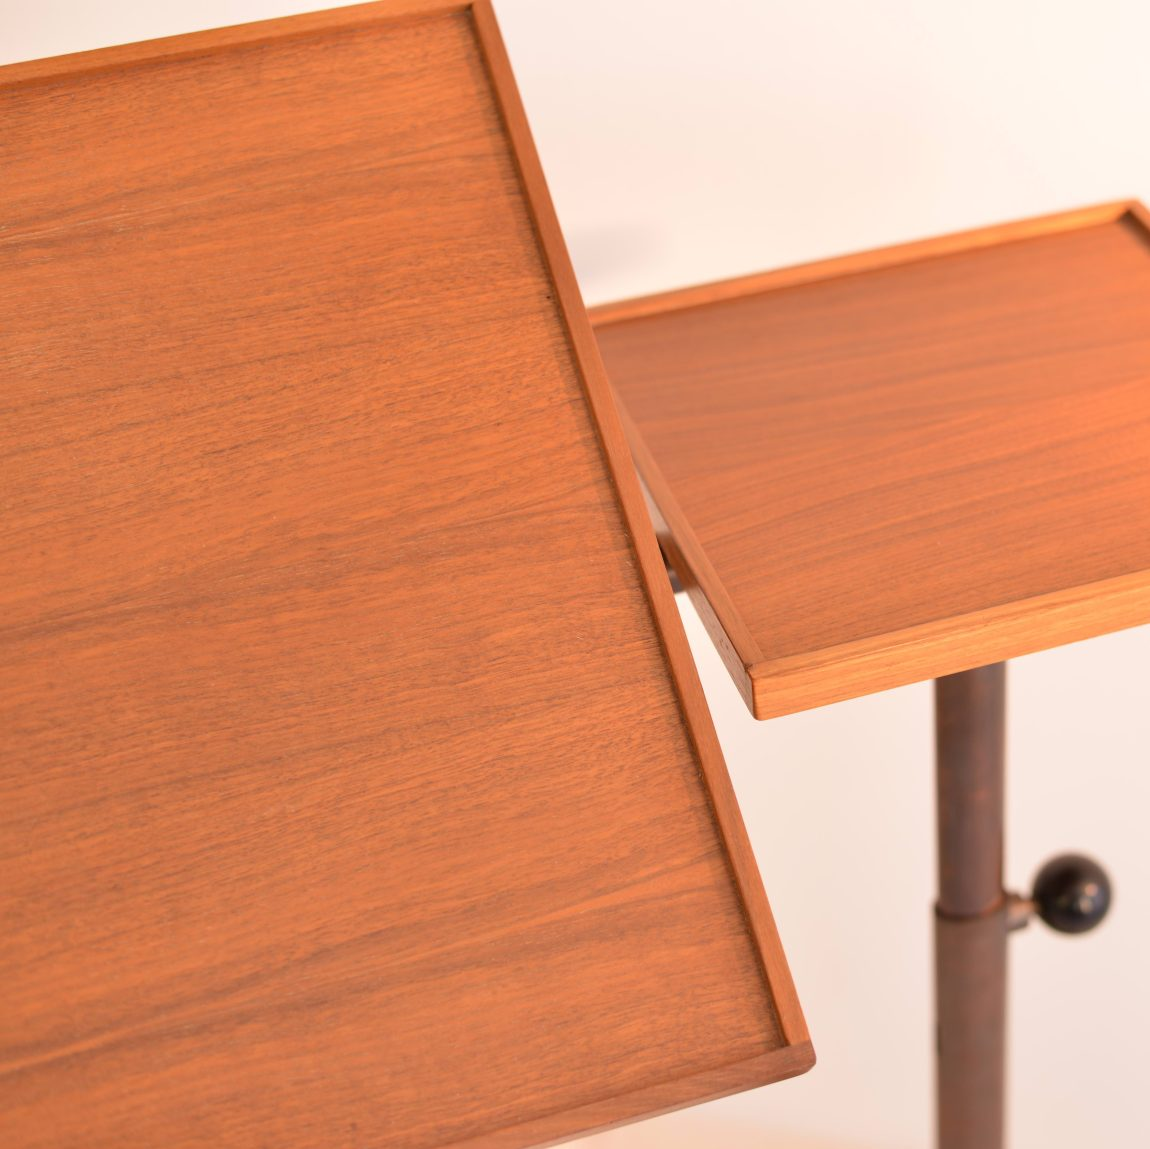 Adjustable Caruelle Table by Embru